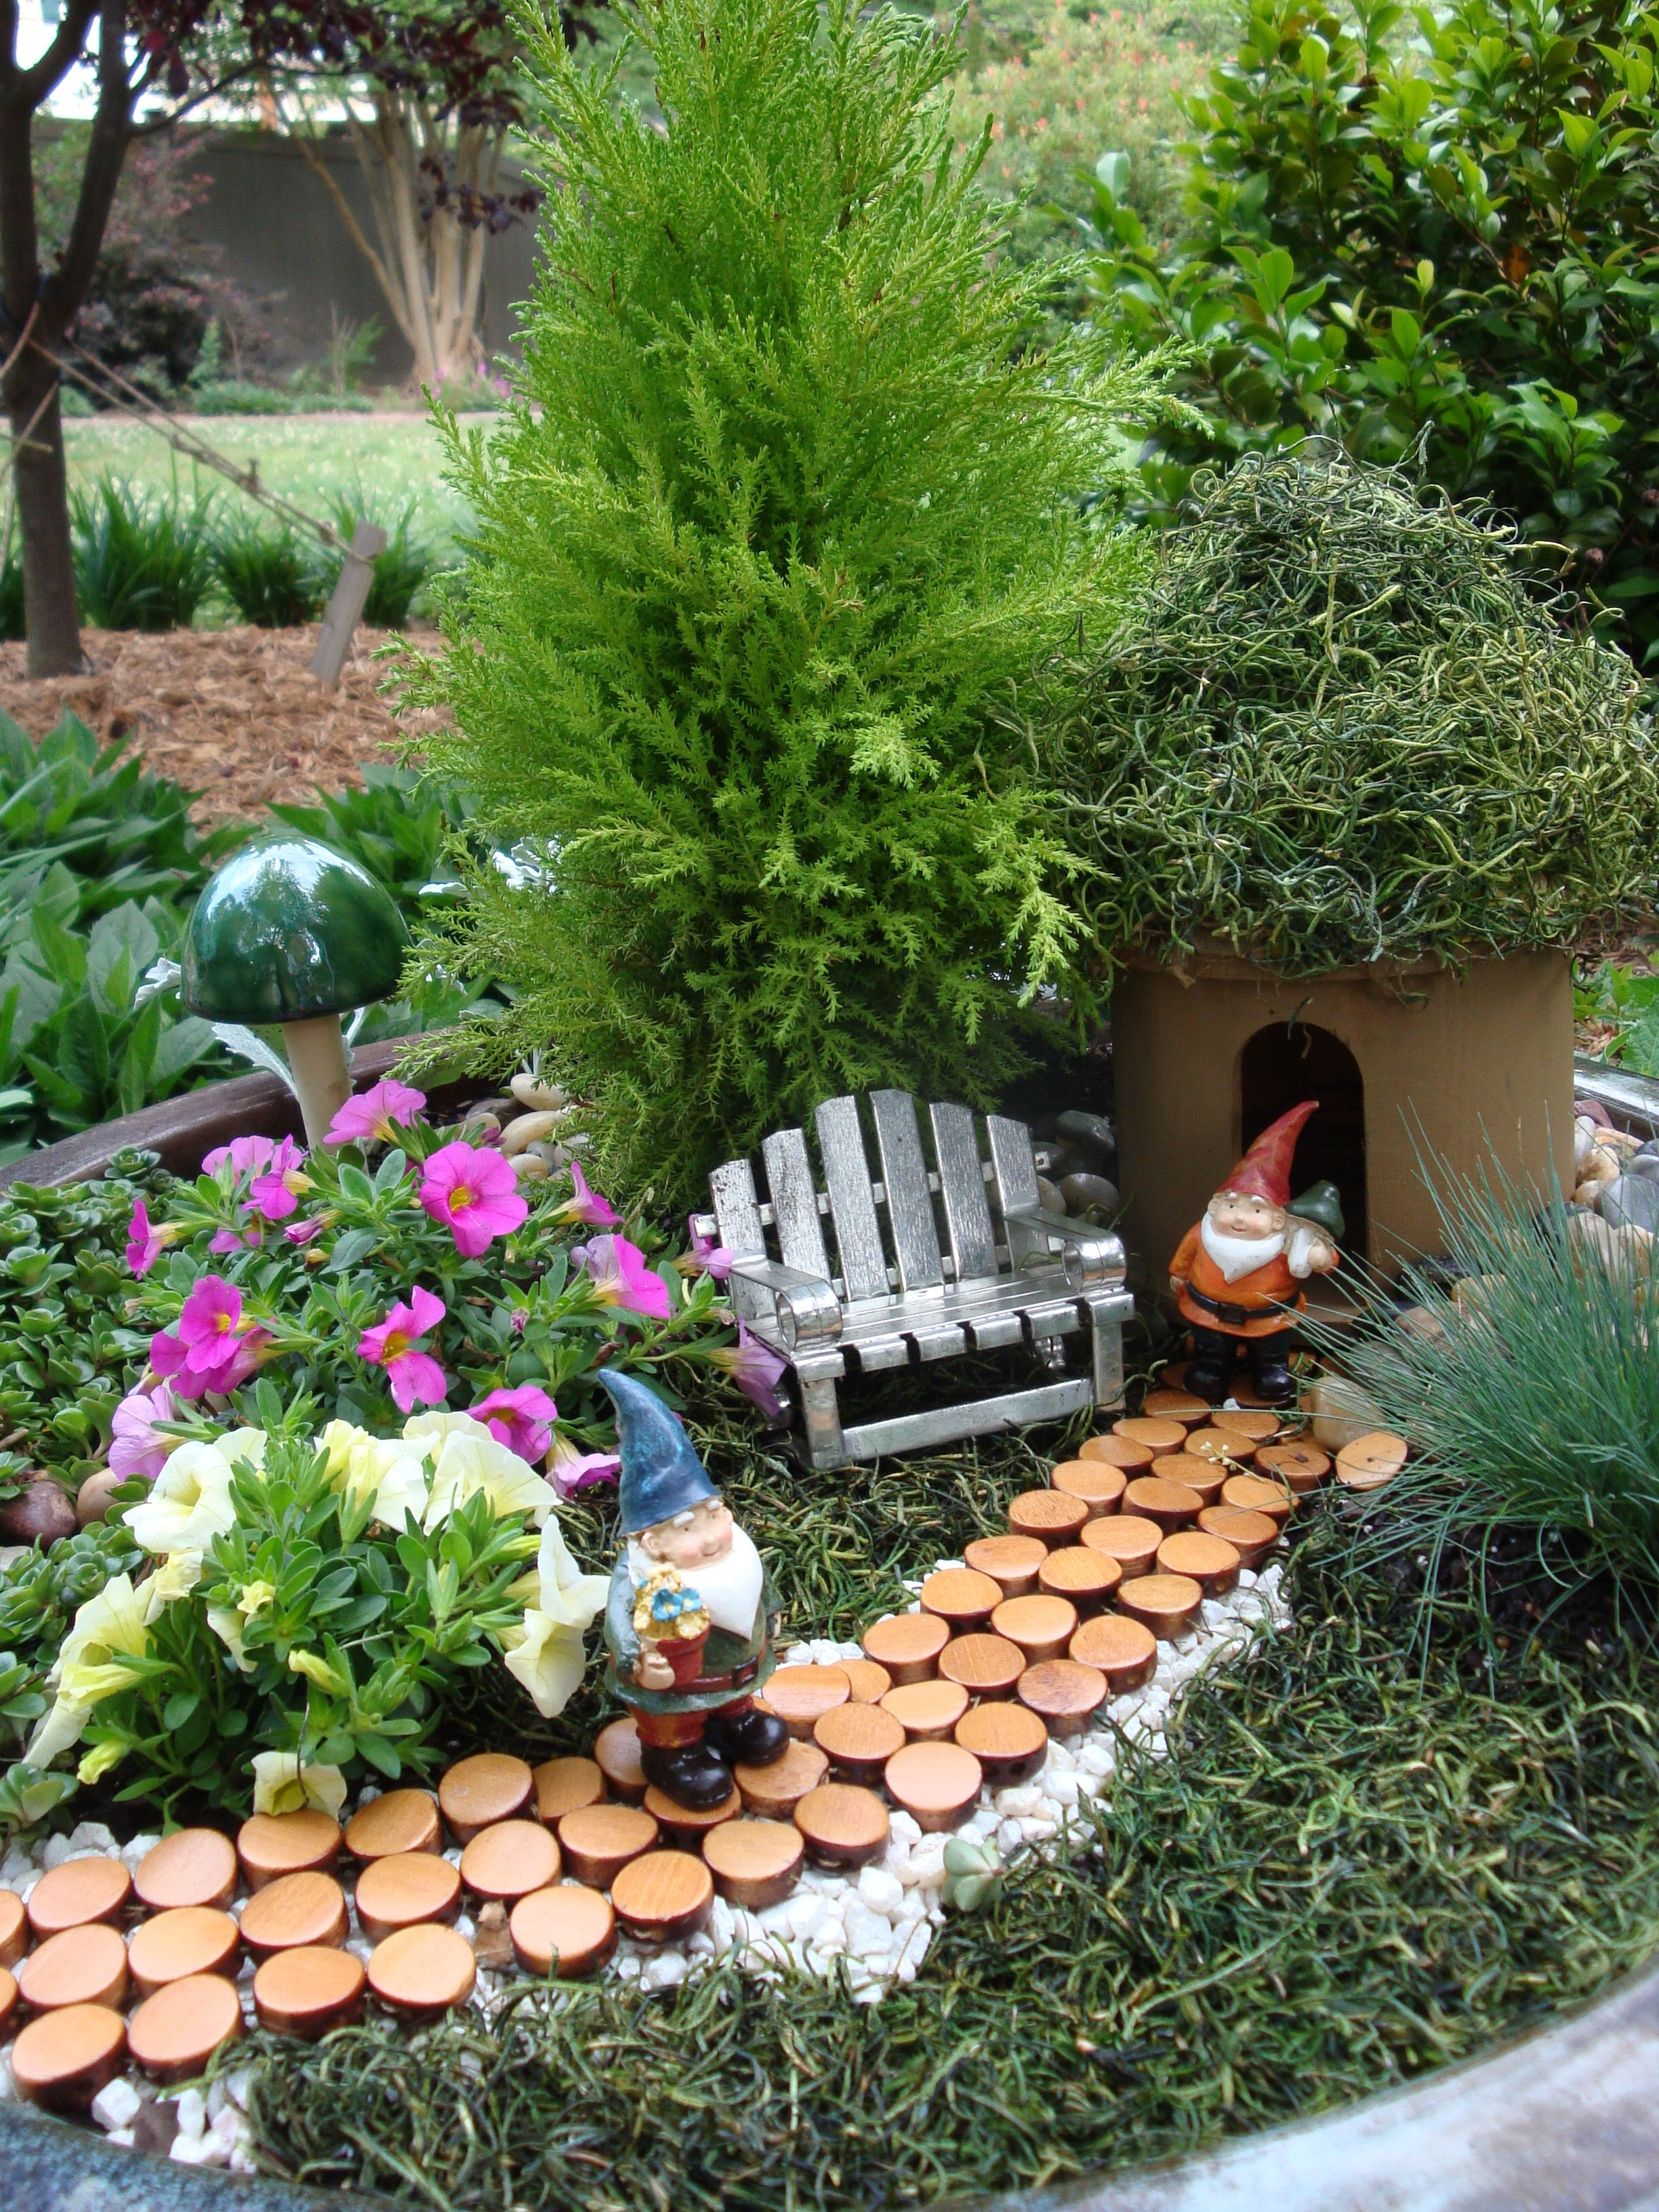 Gnome Garden: Think Miniature Landscape Around The Gnomes Rather Than